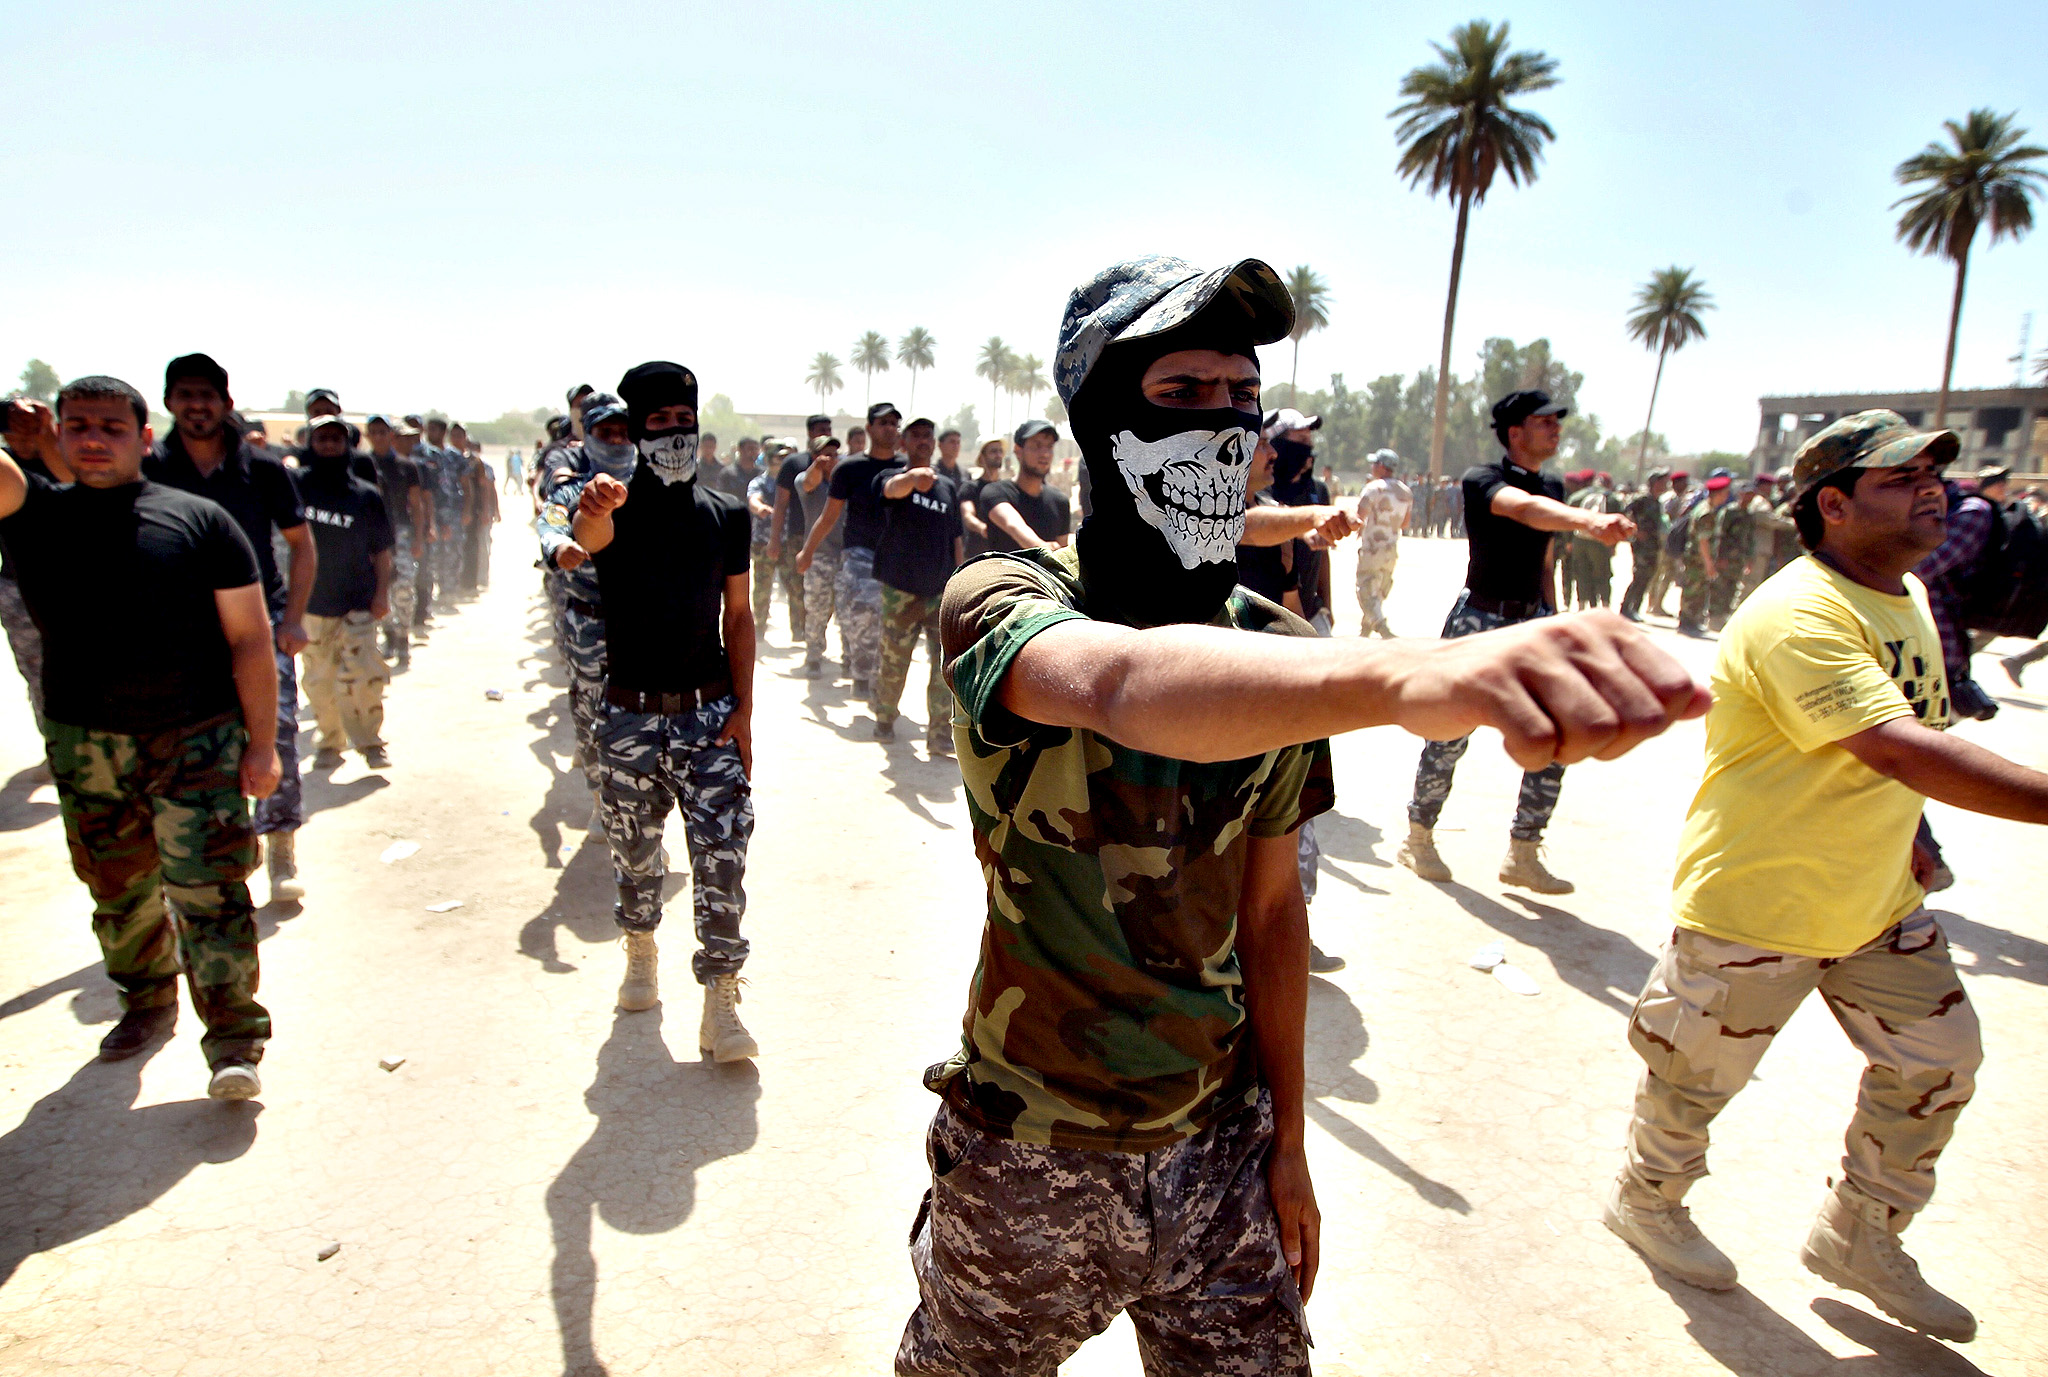 Shiite volunteers from the Iraqi Ketaeb (brigade) Hezbollah, march as they join the Iraqi army to fight against Jihadist militants of the Islamic State (IS), formerly known as the Islamic State in Iraq and the Levant (ISIL), on July 9, 2014, in Baghdad.. Iraq's government once battled entrenched Shiite militiamen but is now making common cause with them against a jihadist-led onslaught that Baghdad's forces are struggling to contain on their own.